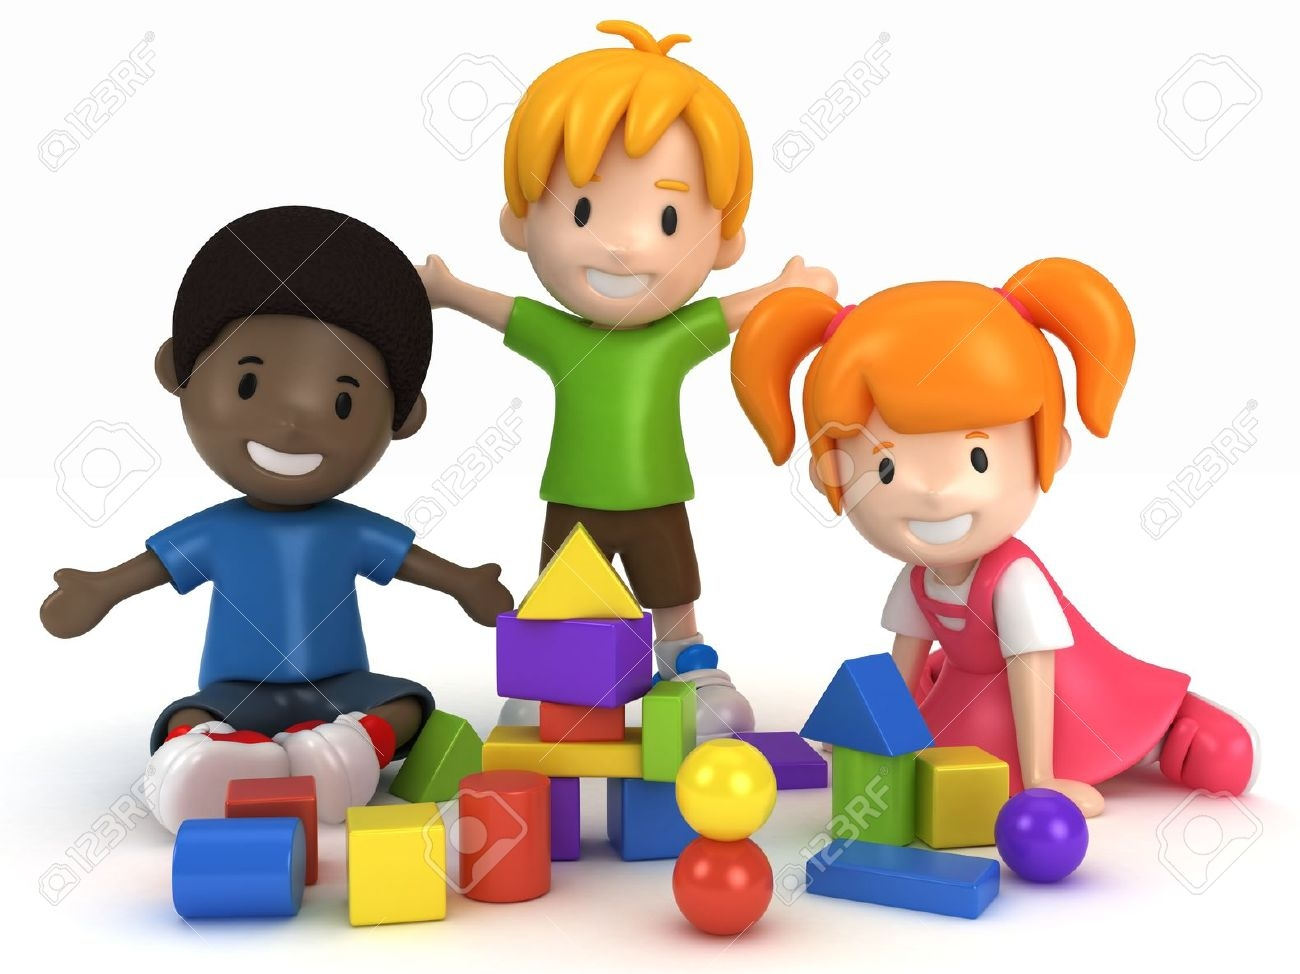 Kids clipartfest. Clipart boy building blocks